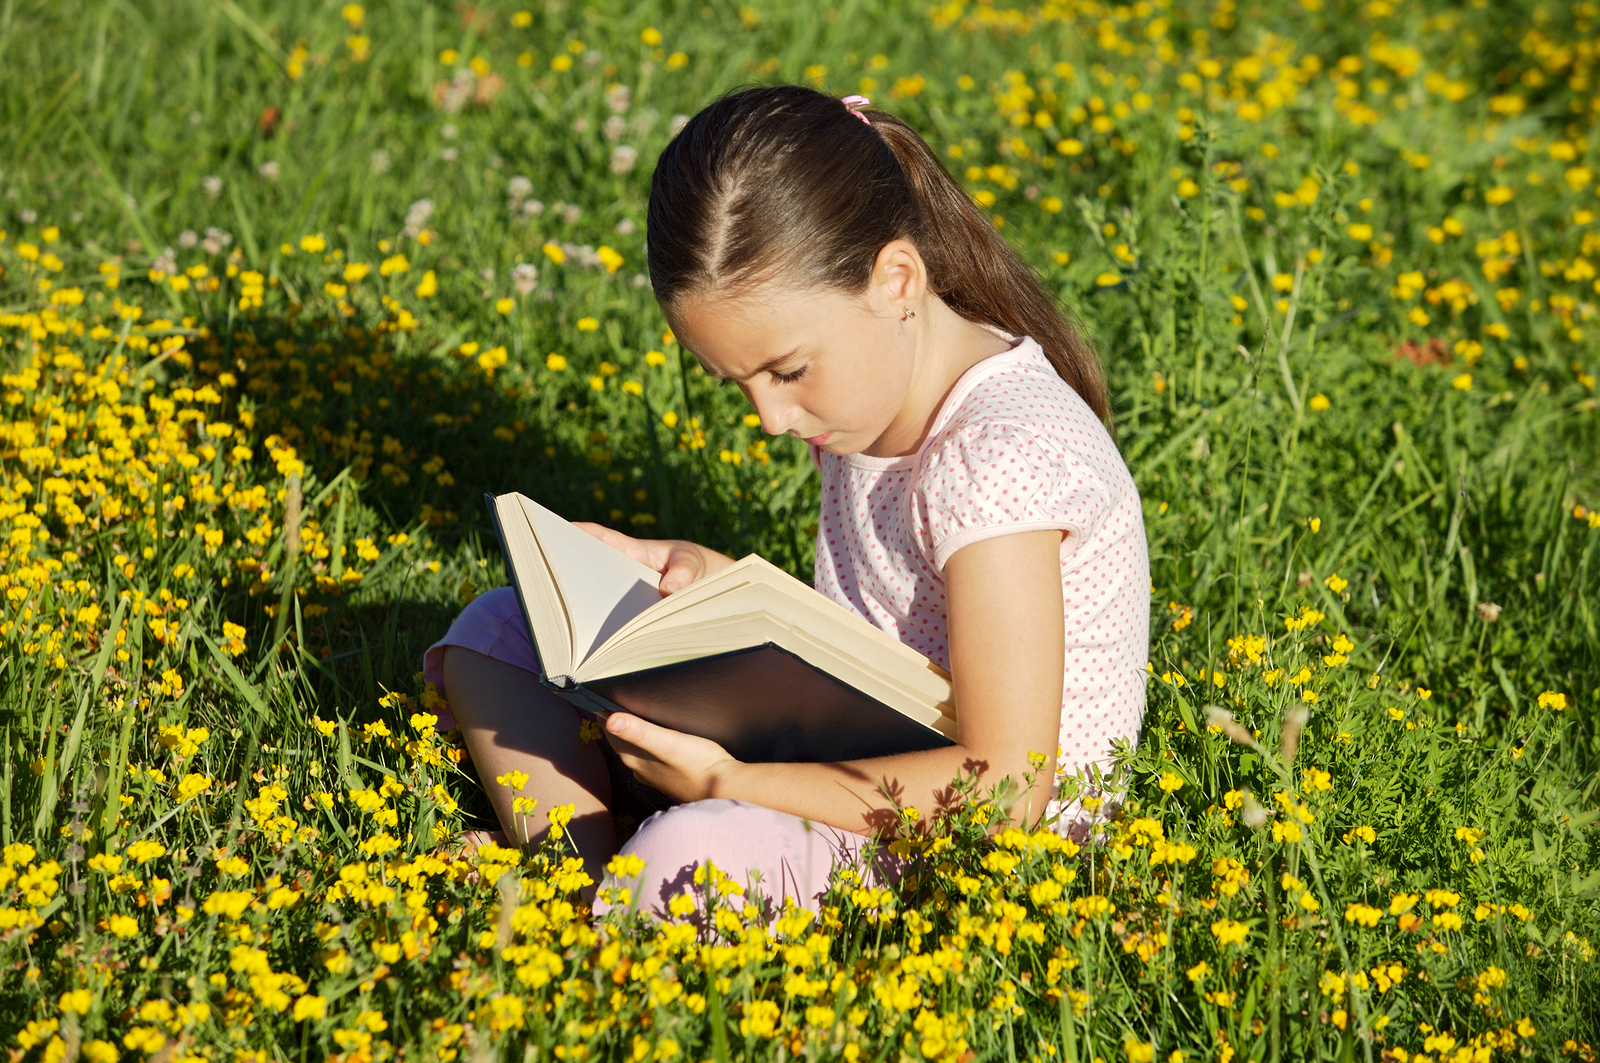 As your child gets older, it can be hard to find appropriate chapter books, especially books with female protagonists.